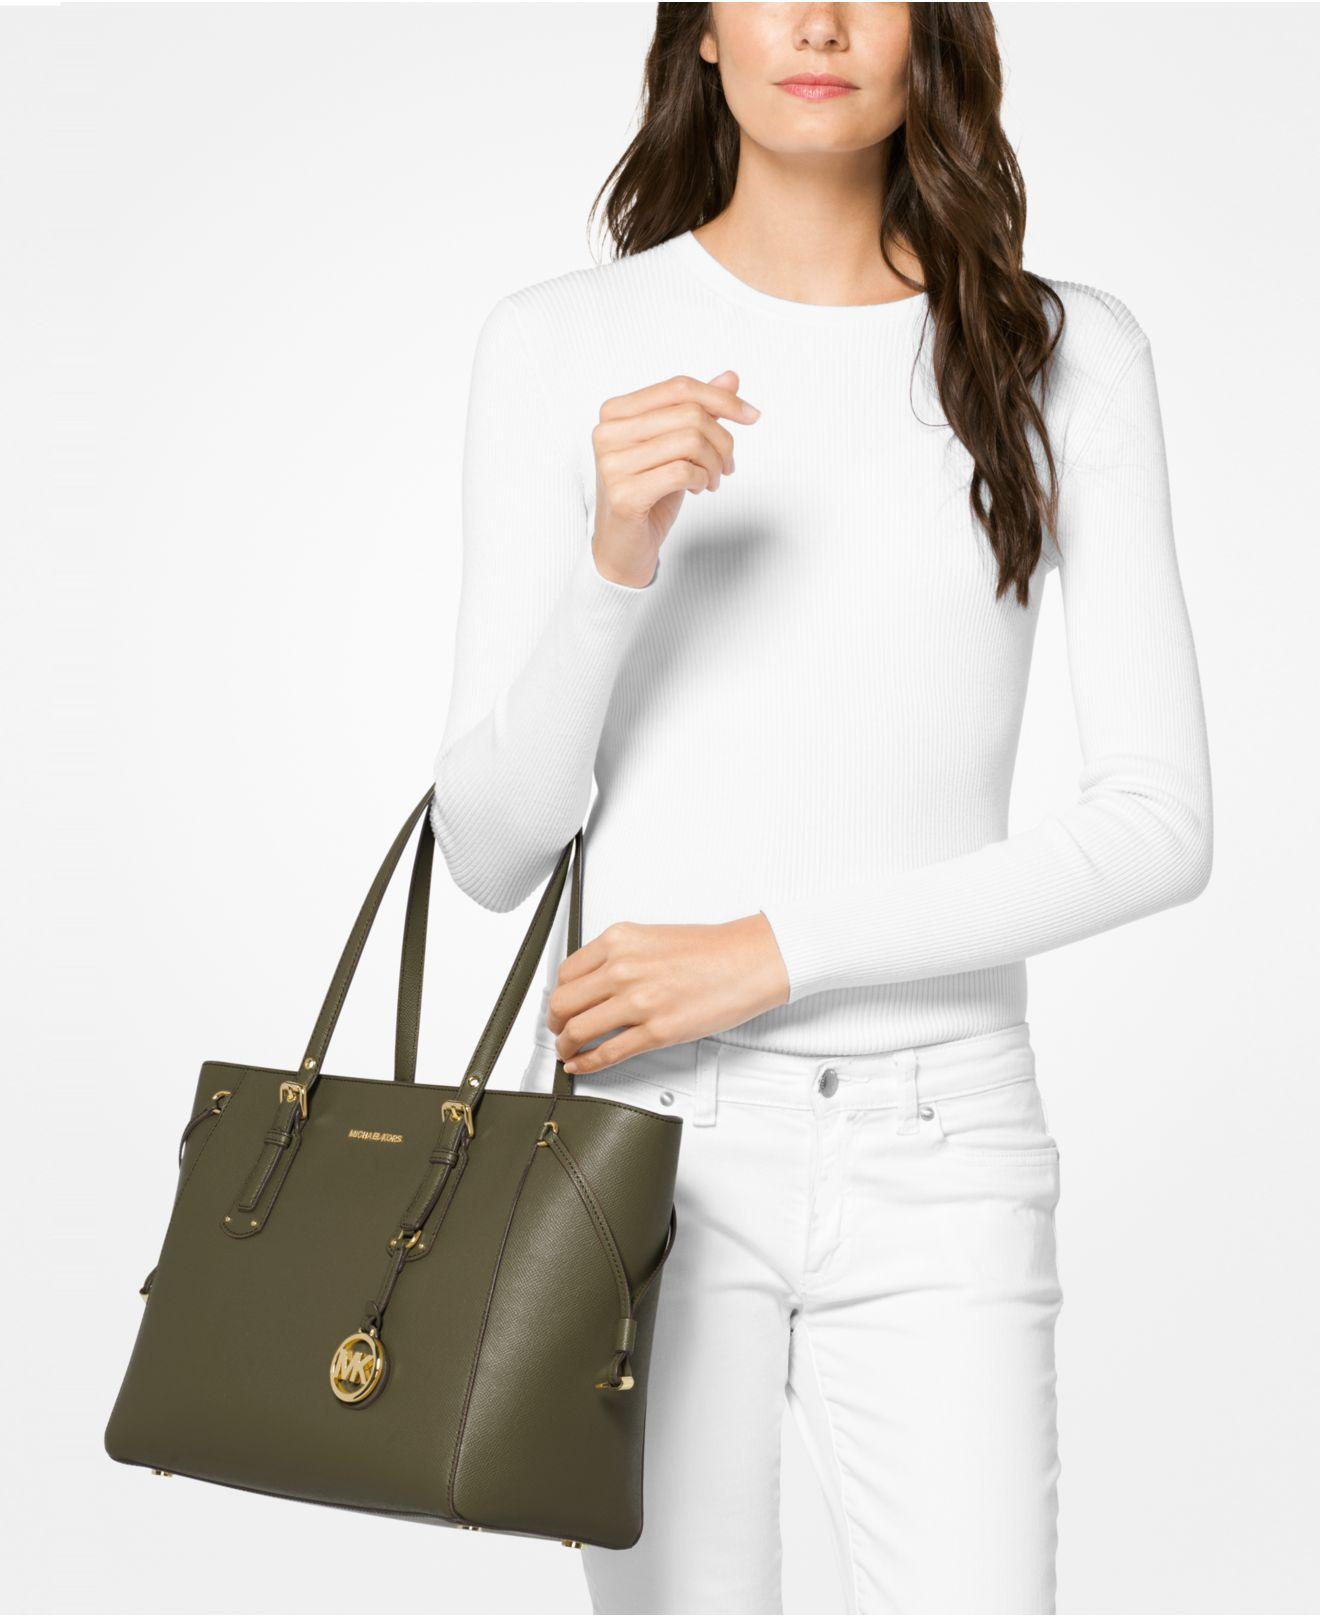 ca6f040ced05 Michael Kors Voyager Medium Crossgrain Leather Tote Bag in Green - Save 4%  - Lyst